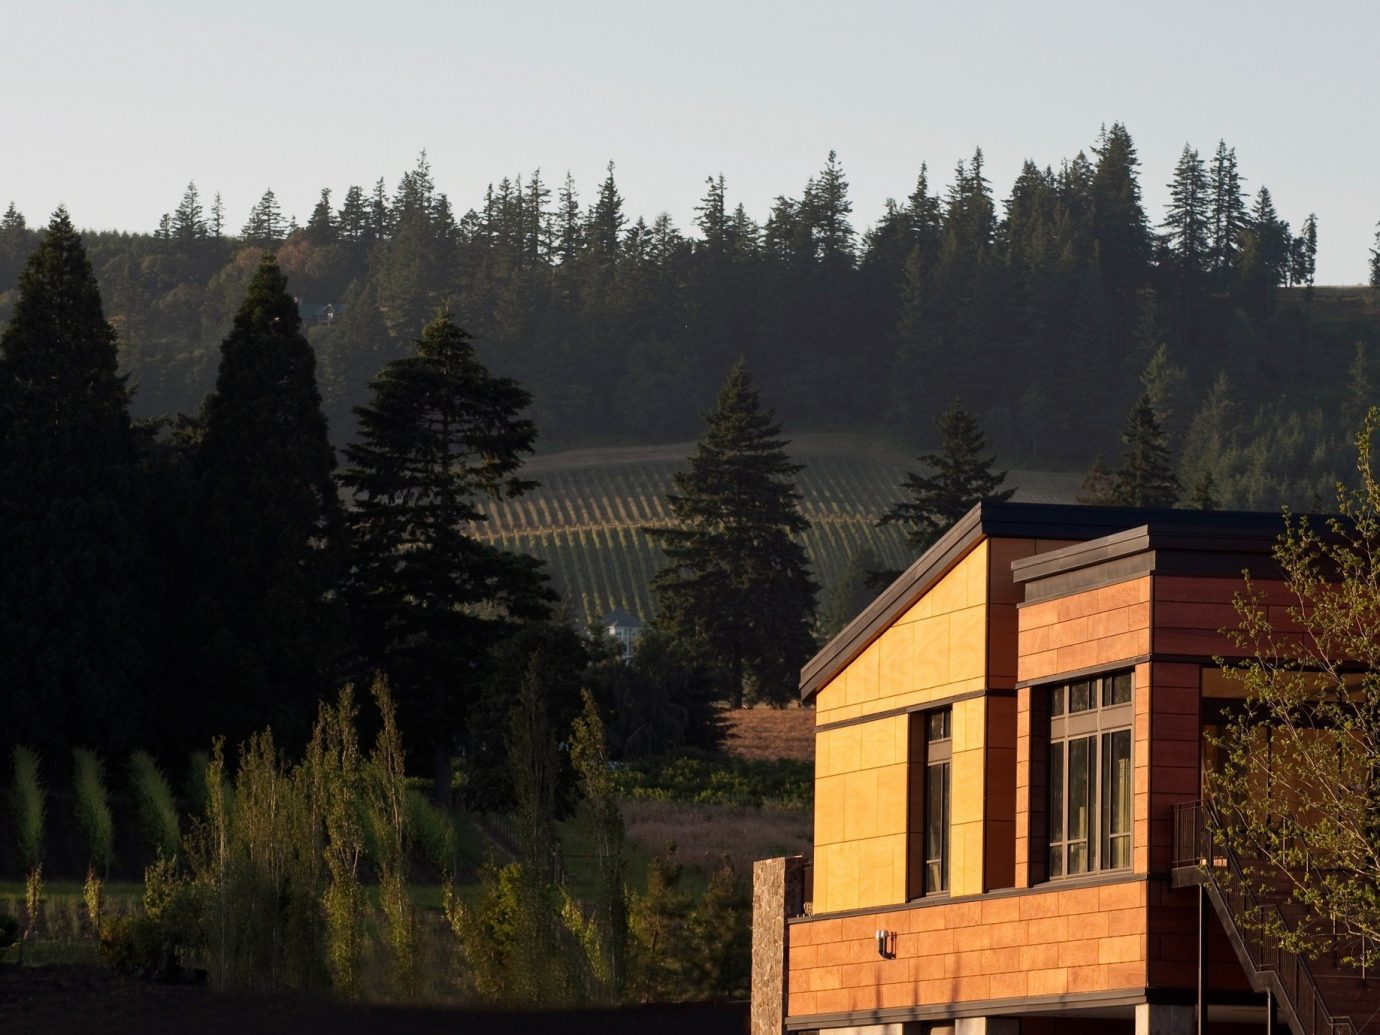 Exterior view of the Allison Inn & Spa in Willamette, Oregon.